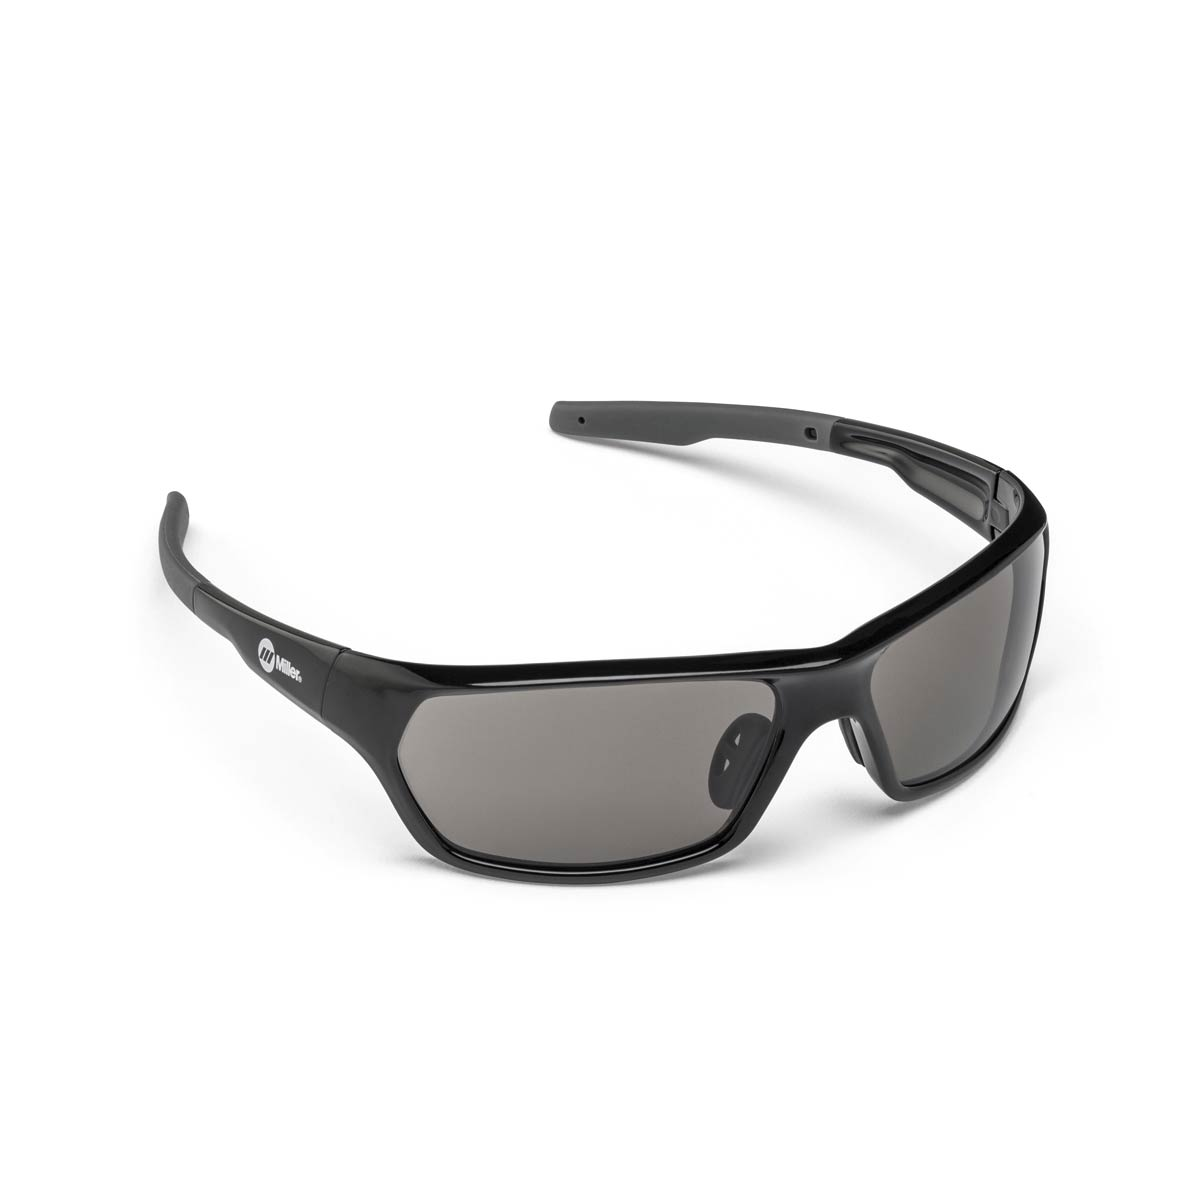 SAFETY GLASSES SLAG BLACK SMOKE. Part: 272203. Pack: 1